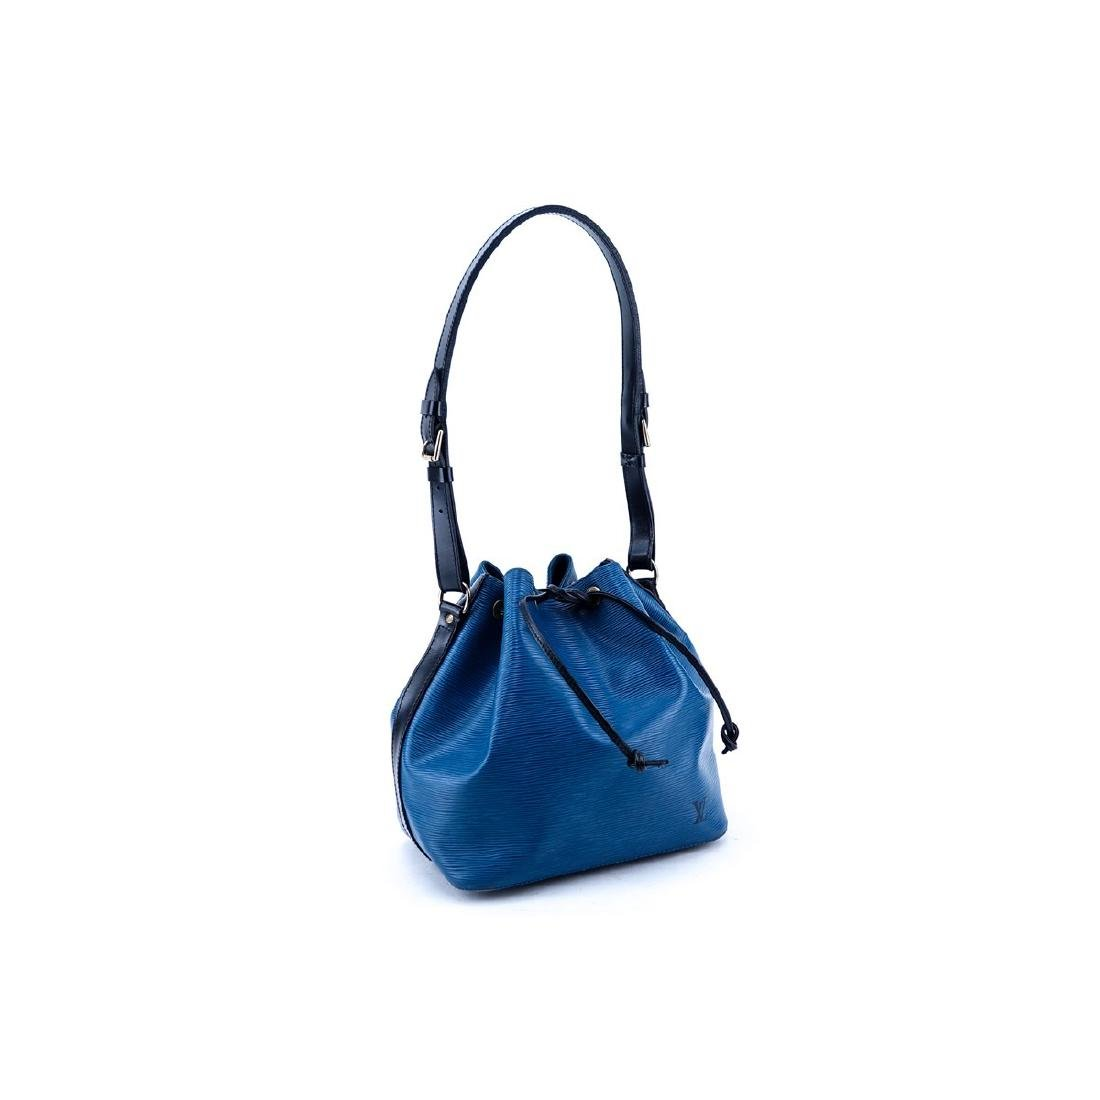 Louis Vuitton Blue/Black Epi Leather Noe Bicolor